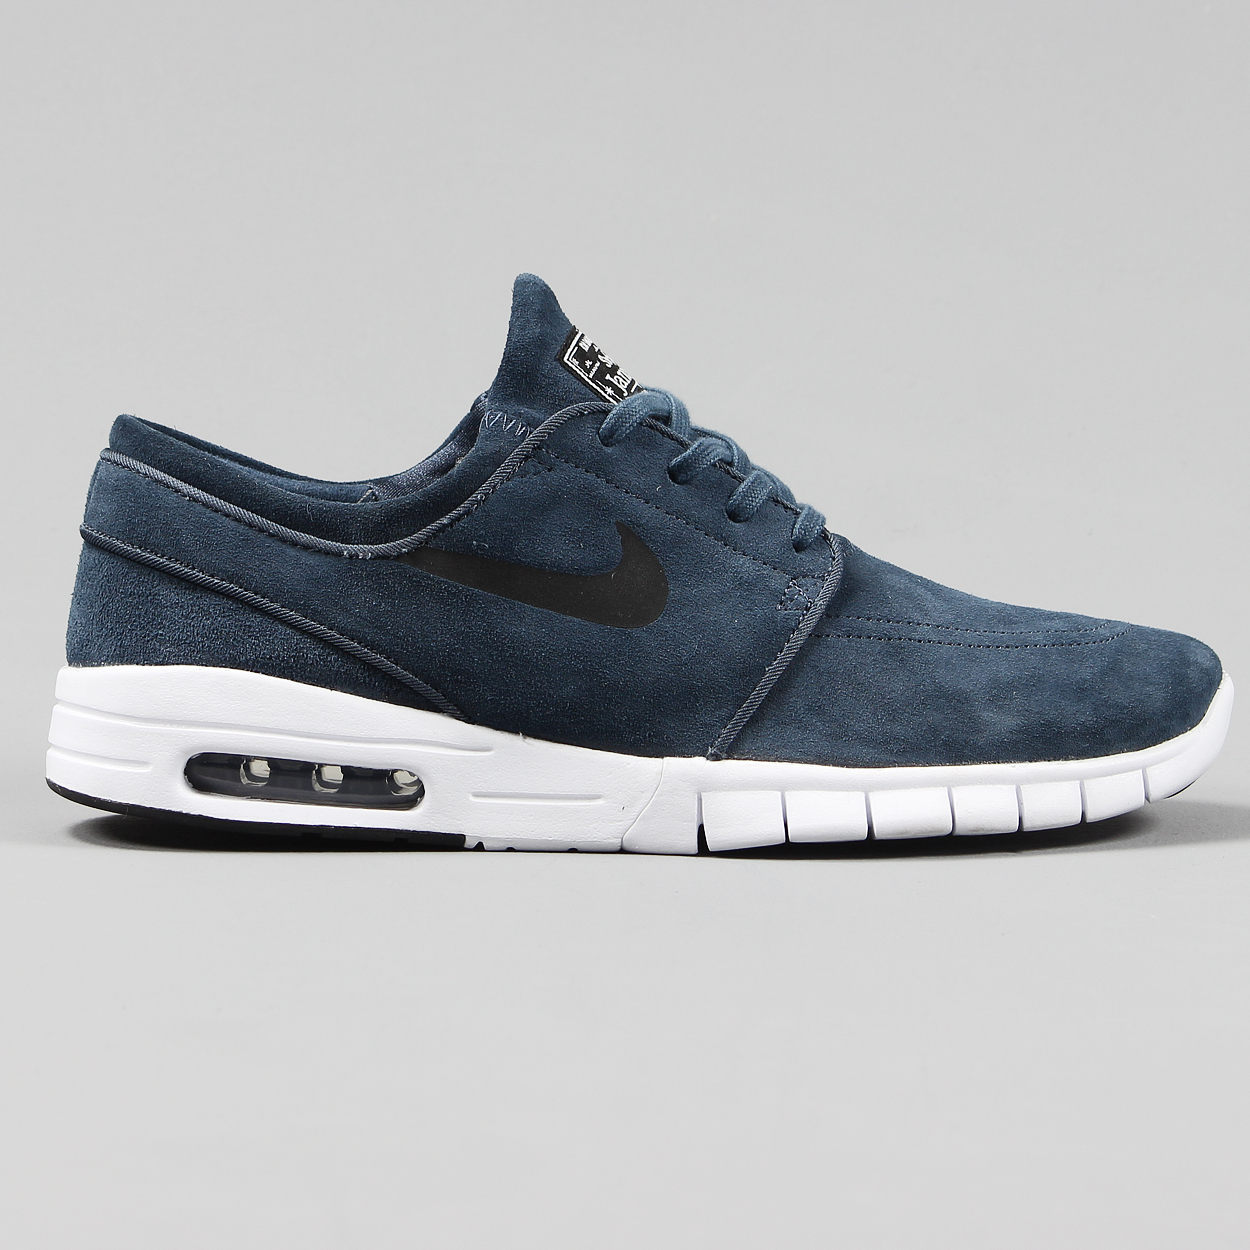 777512db305d4b Nike SB Stefan Janoski Max L Shoes Squadron Blue Black White £74.25